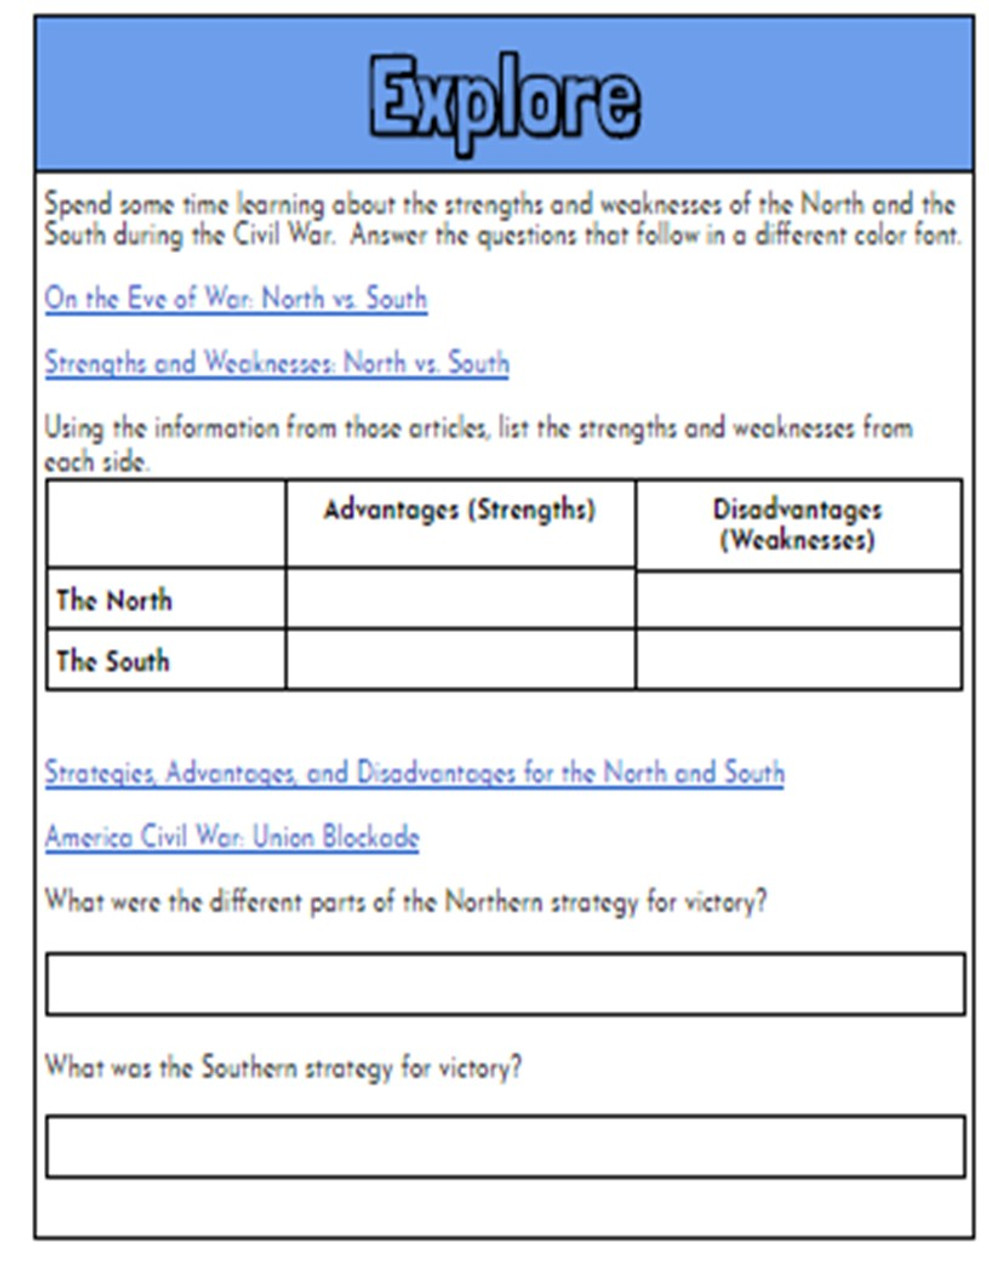 Civil War Hyperdoc: North vs. South Strengths and Weaknesses Webquest